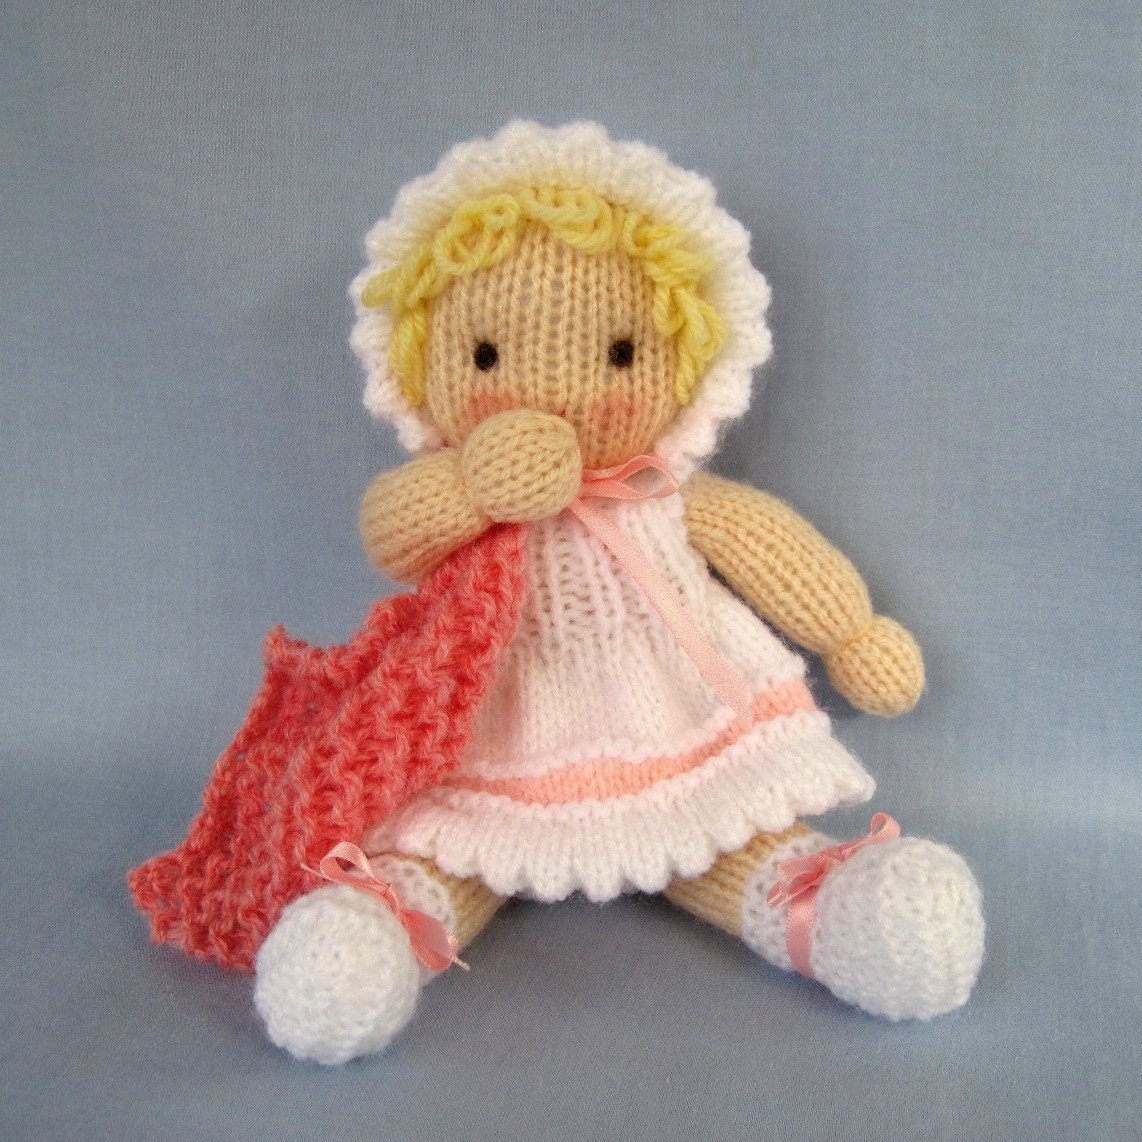 KNIT PATTERNS FOR DOLLS - FREE PATTERNS